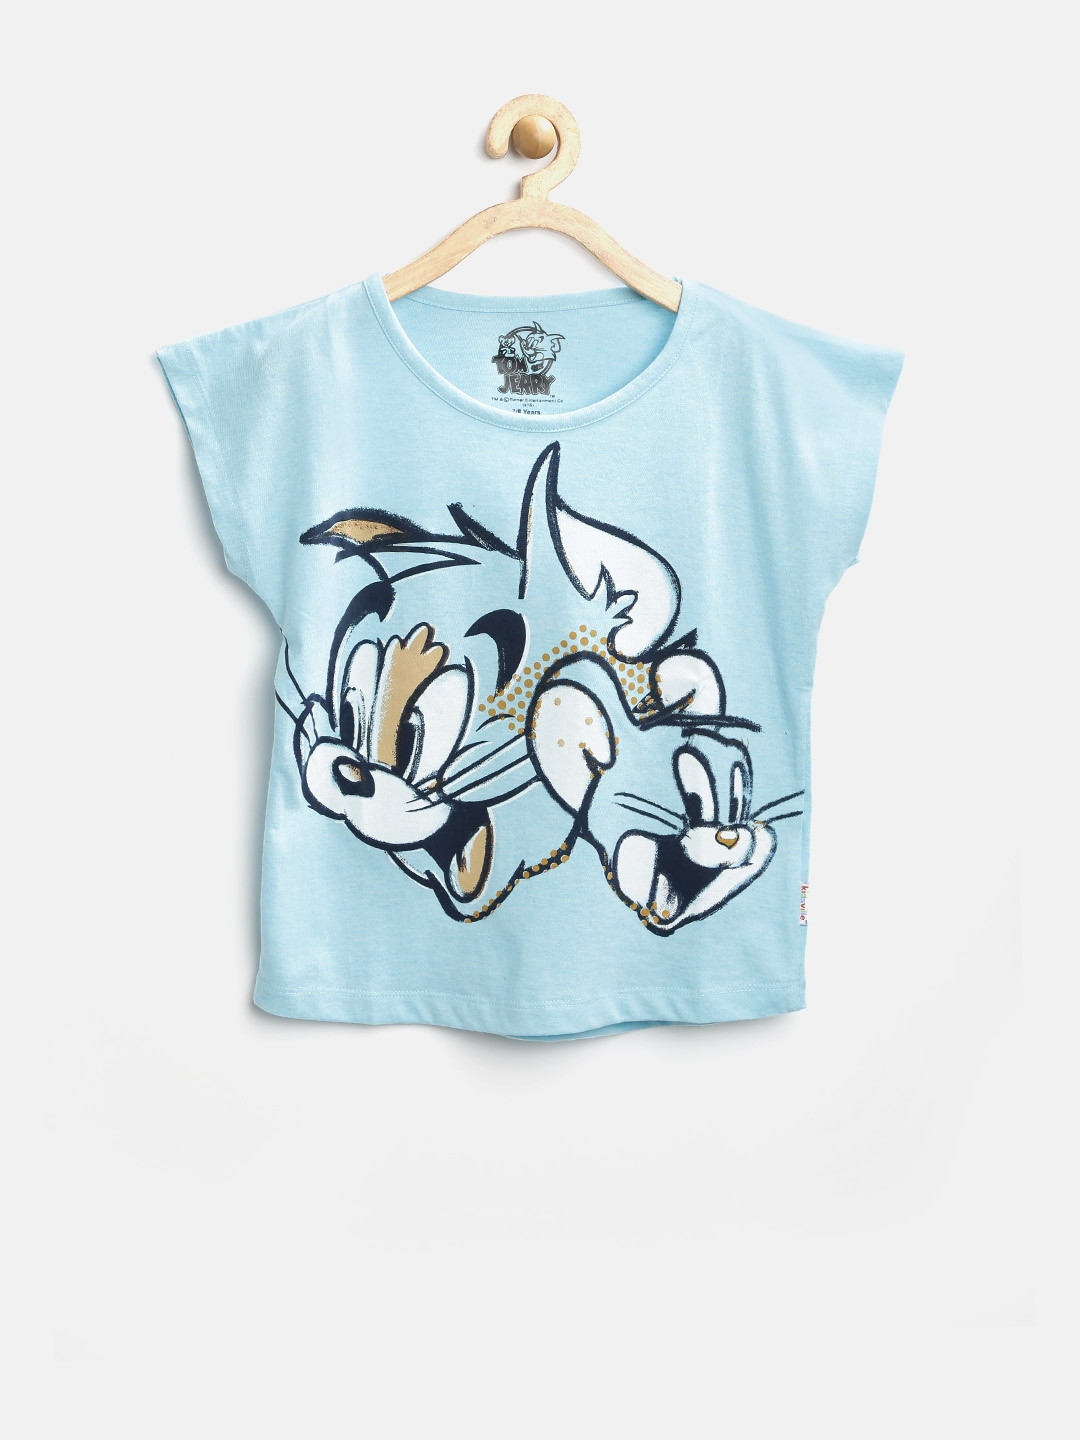 1c31ab1d870d Buy Tom   Jerry By Kids Ville Girls Turquoise Blue Printed Top ...